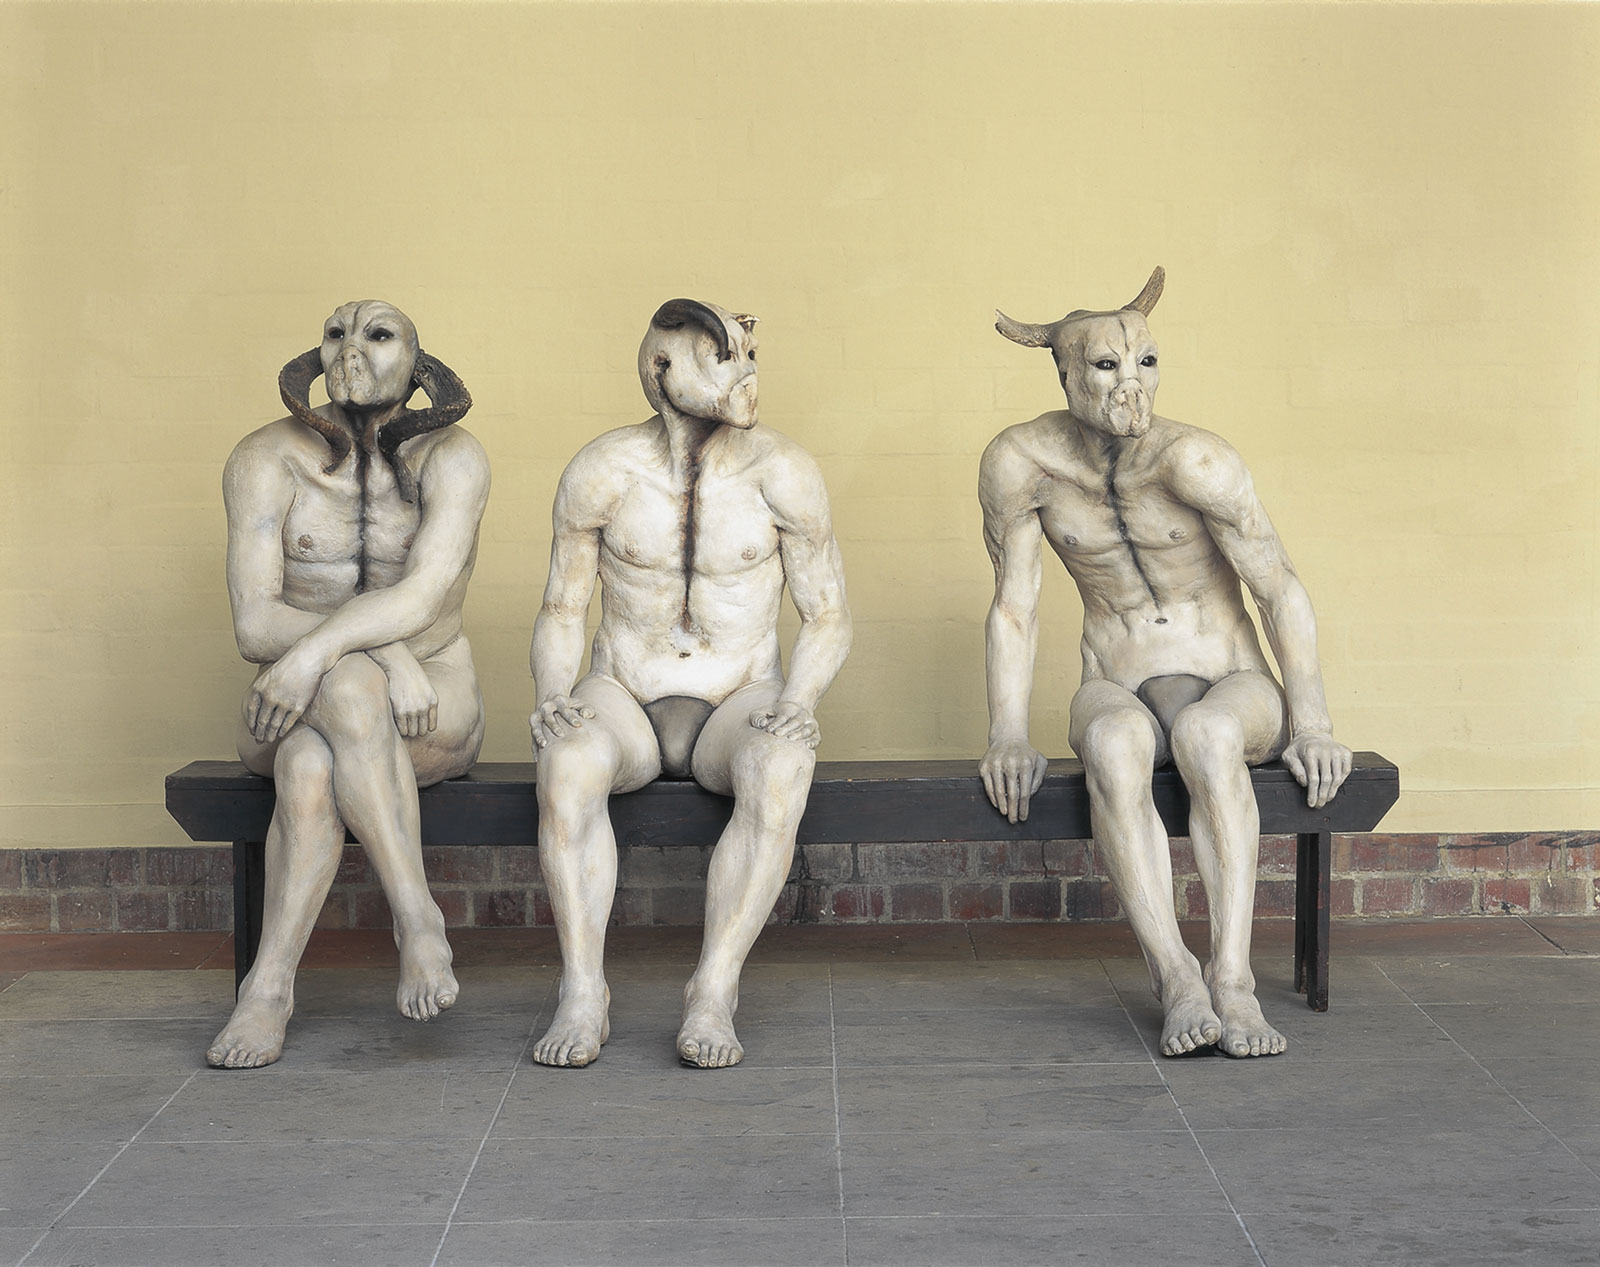 <i>Butcher Boys</i> (1985–86). 128.5 × 213.5 × 88.5 cm. Plaster; bone; horn; oil paint; wood. Collection of Iziko South African National Gallery, Cape Town. Photograph by Mark Lewis